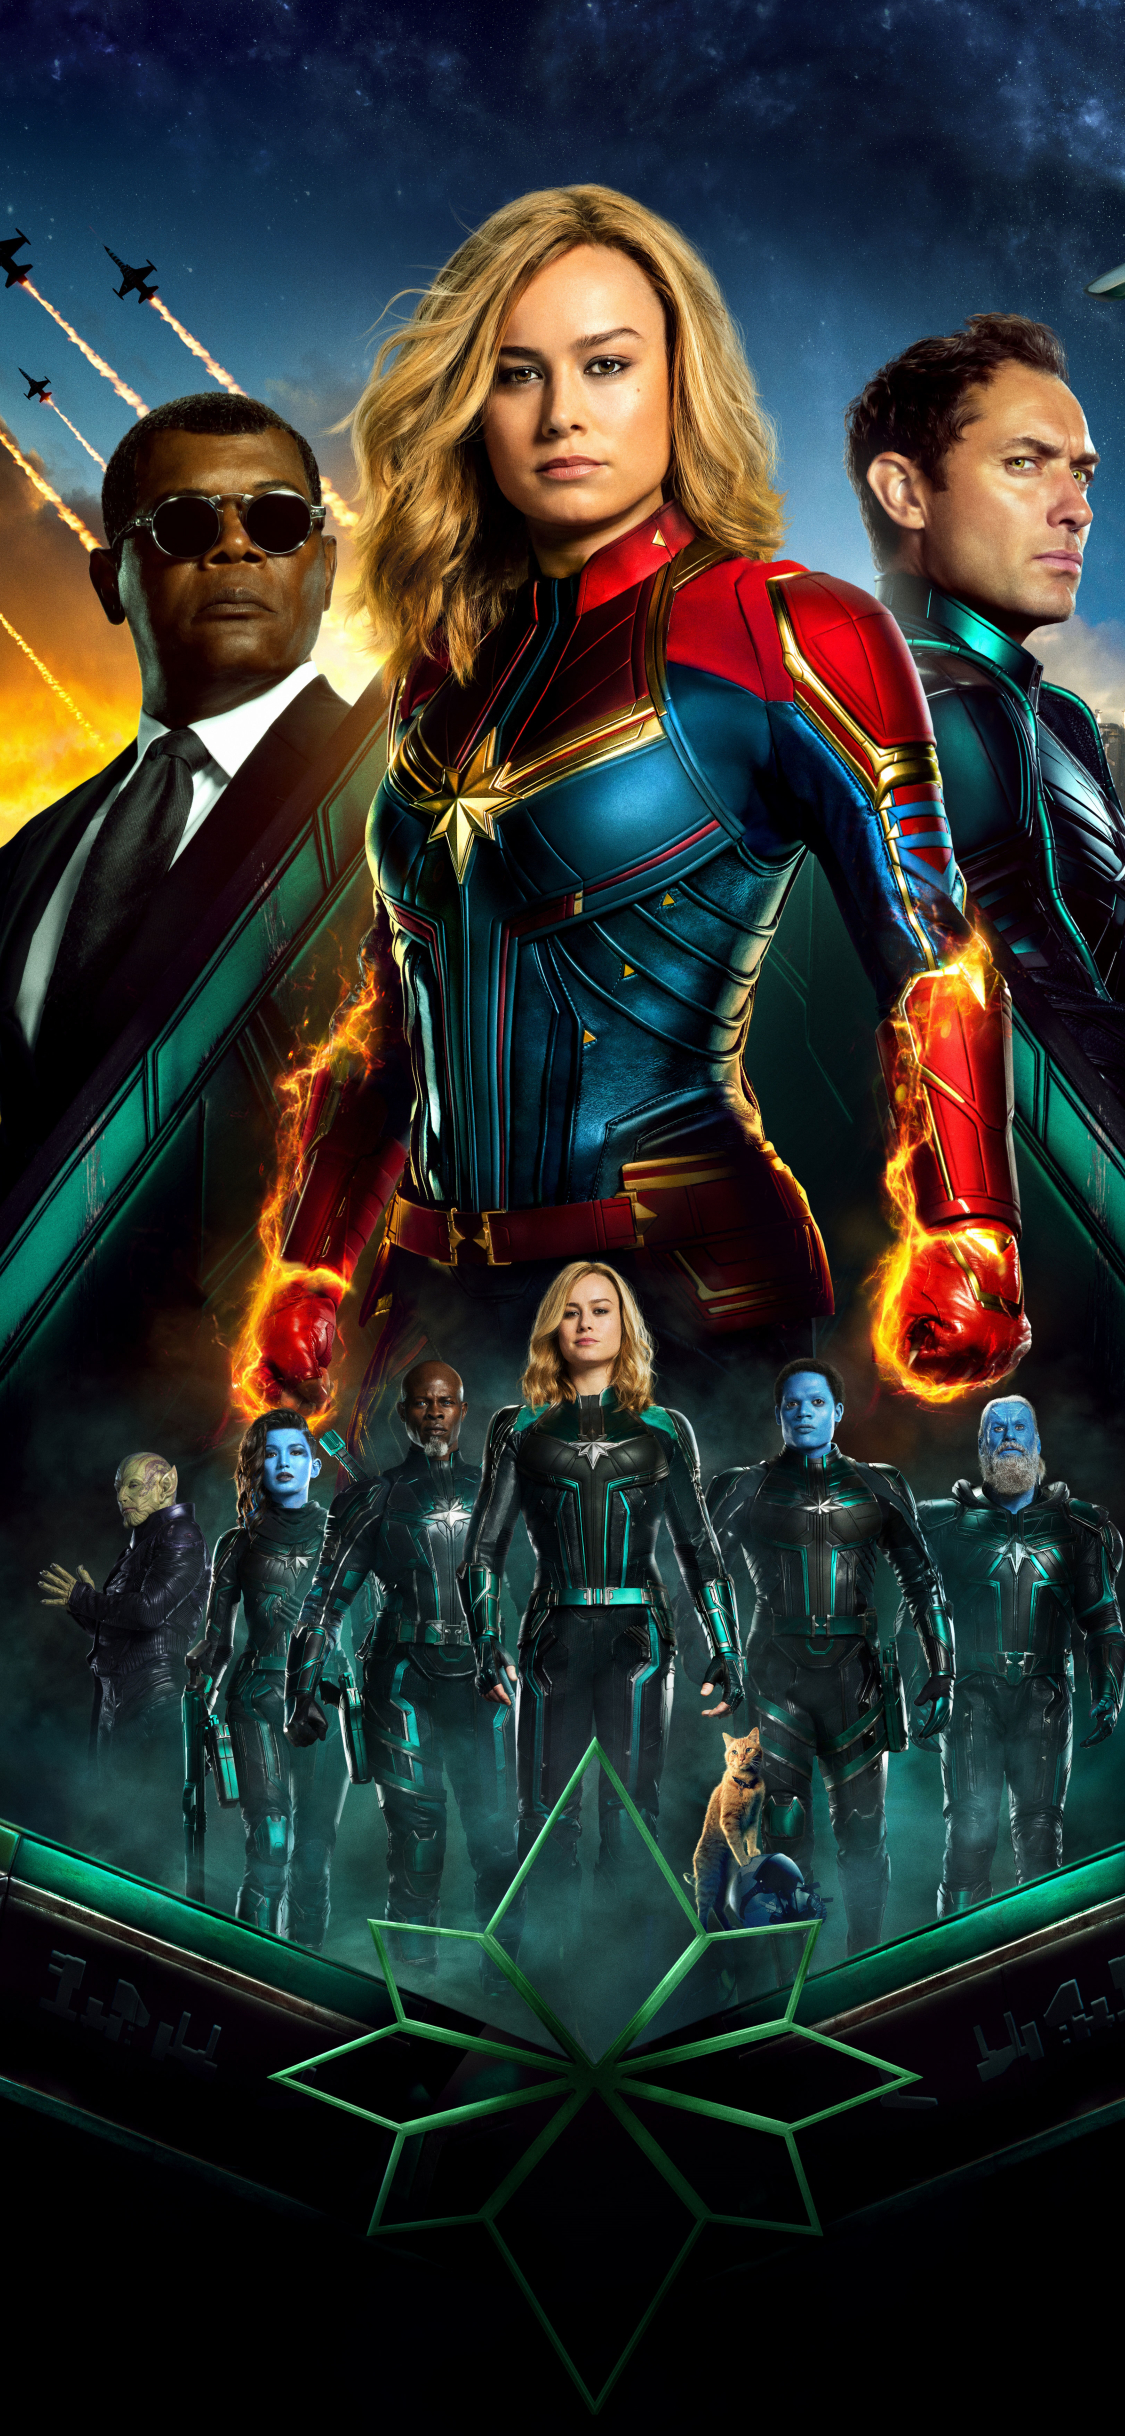 HD Wallpaper | Background Image Captain Marvel Movie All Superheroes